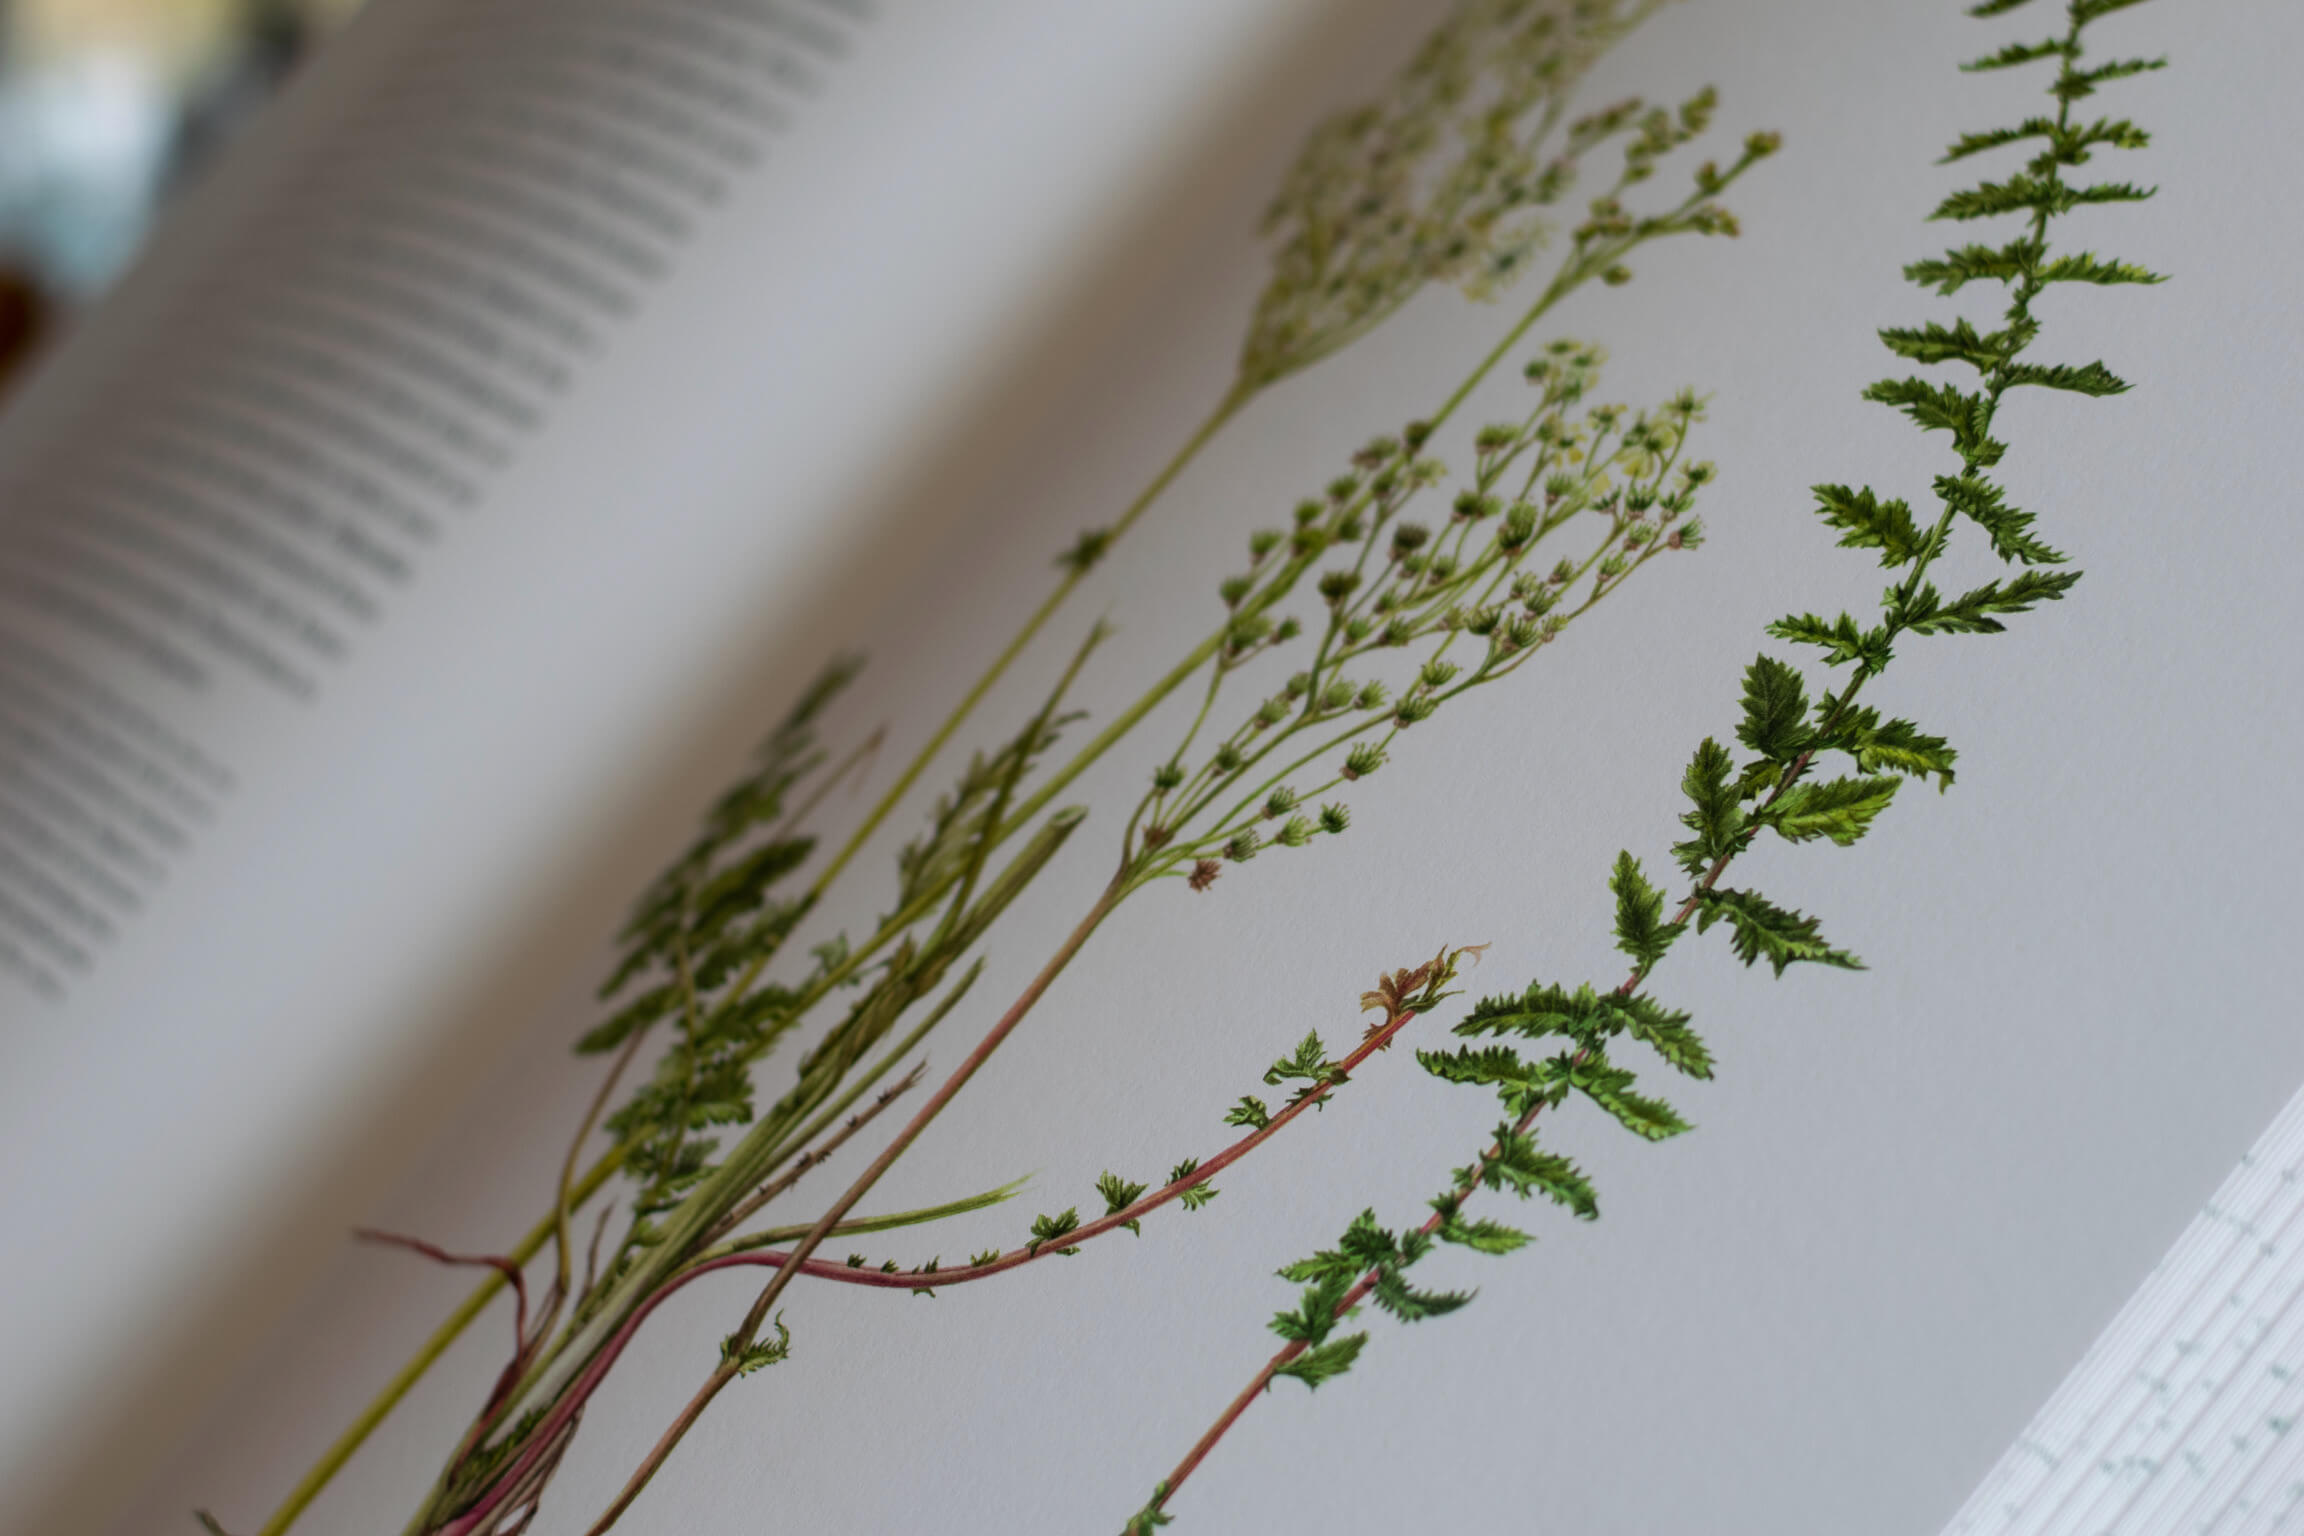 Botanical illustration of plants in a book.